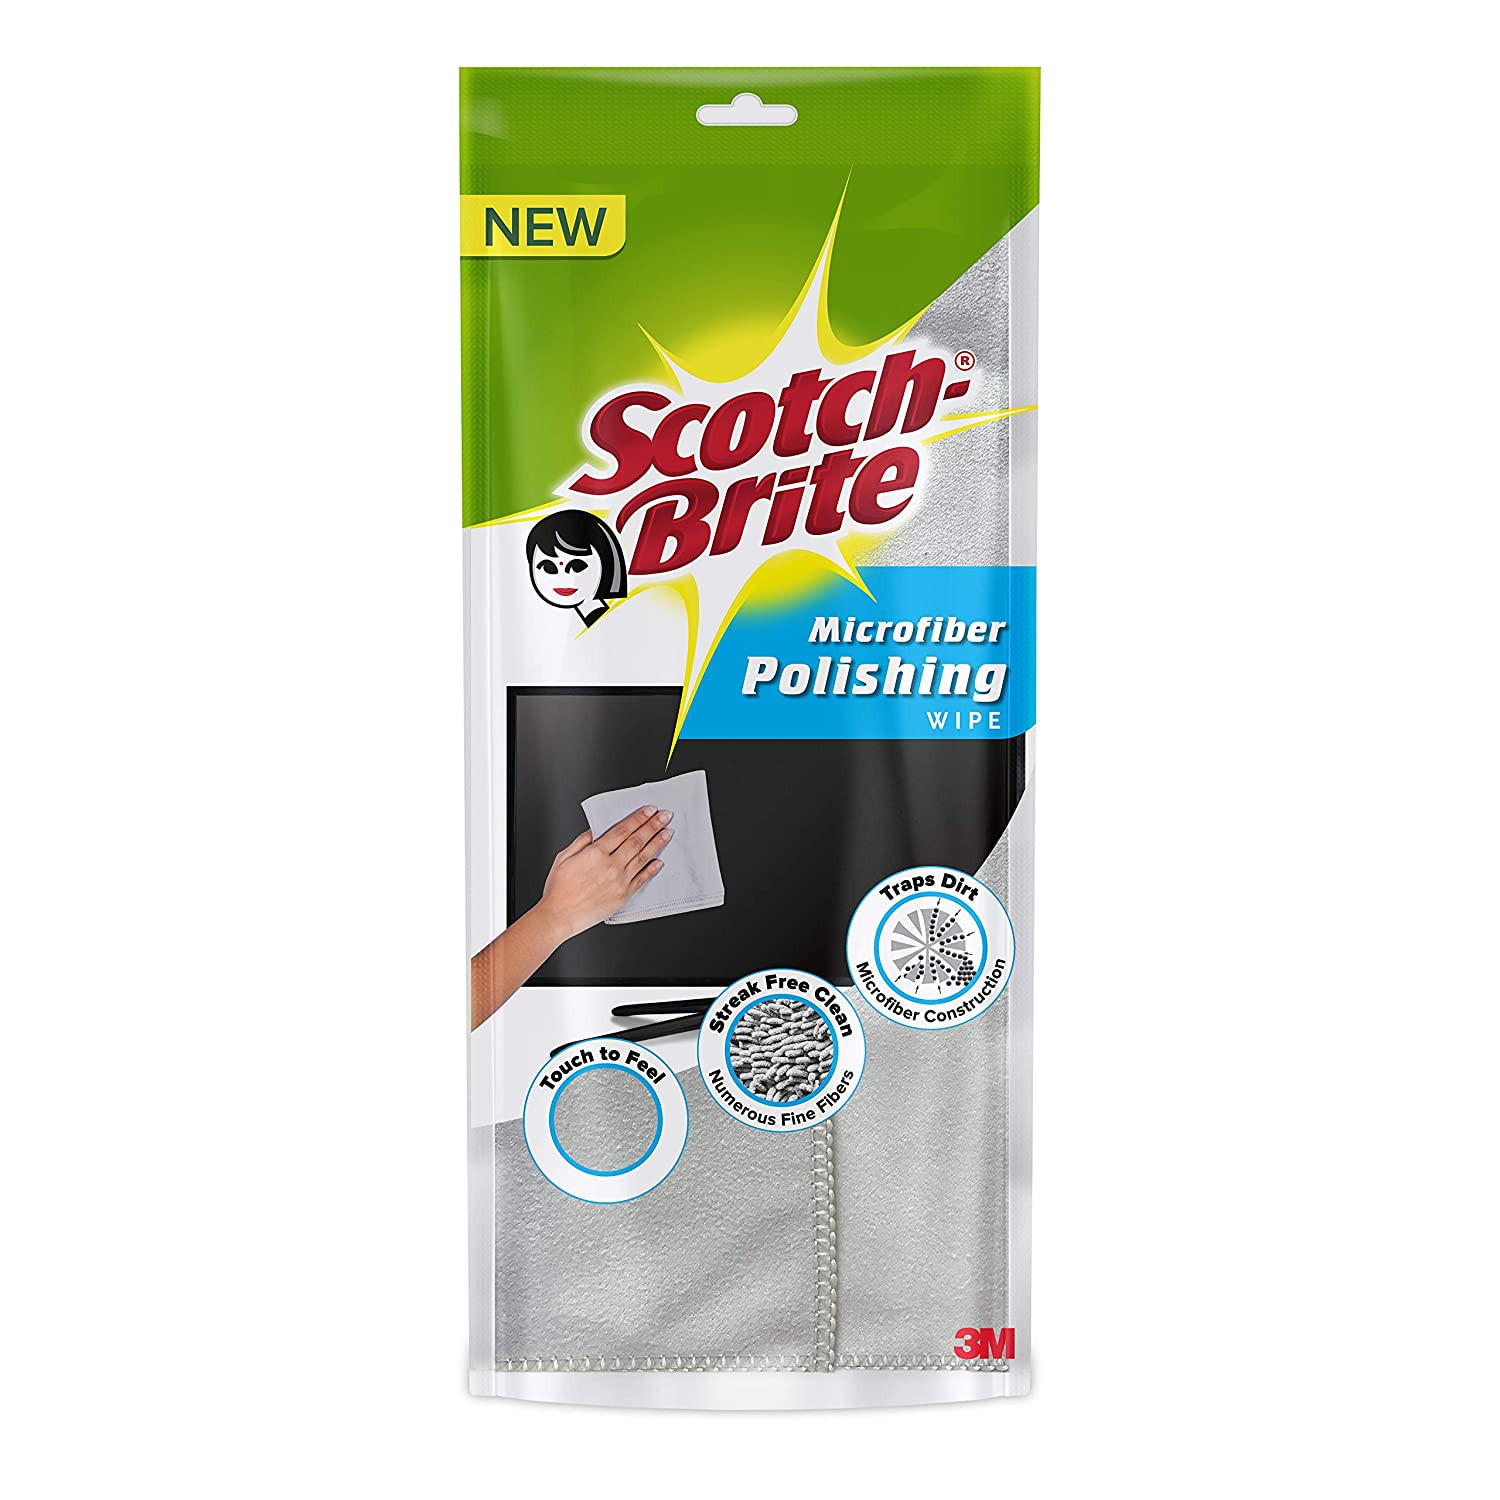 Scotch Brite MF Polishing Wipe